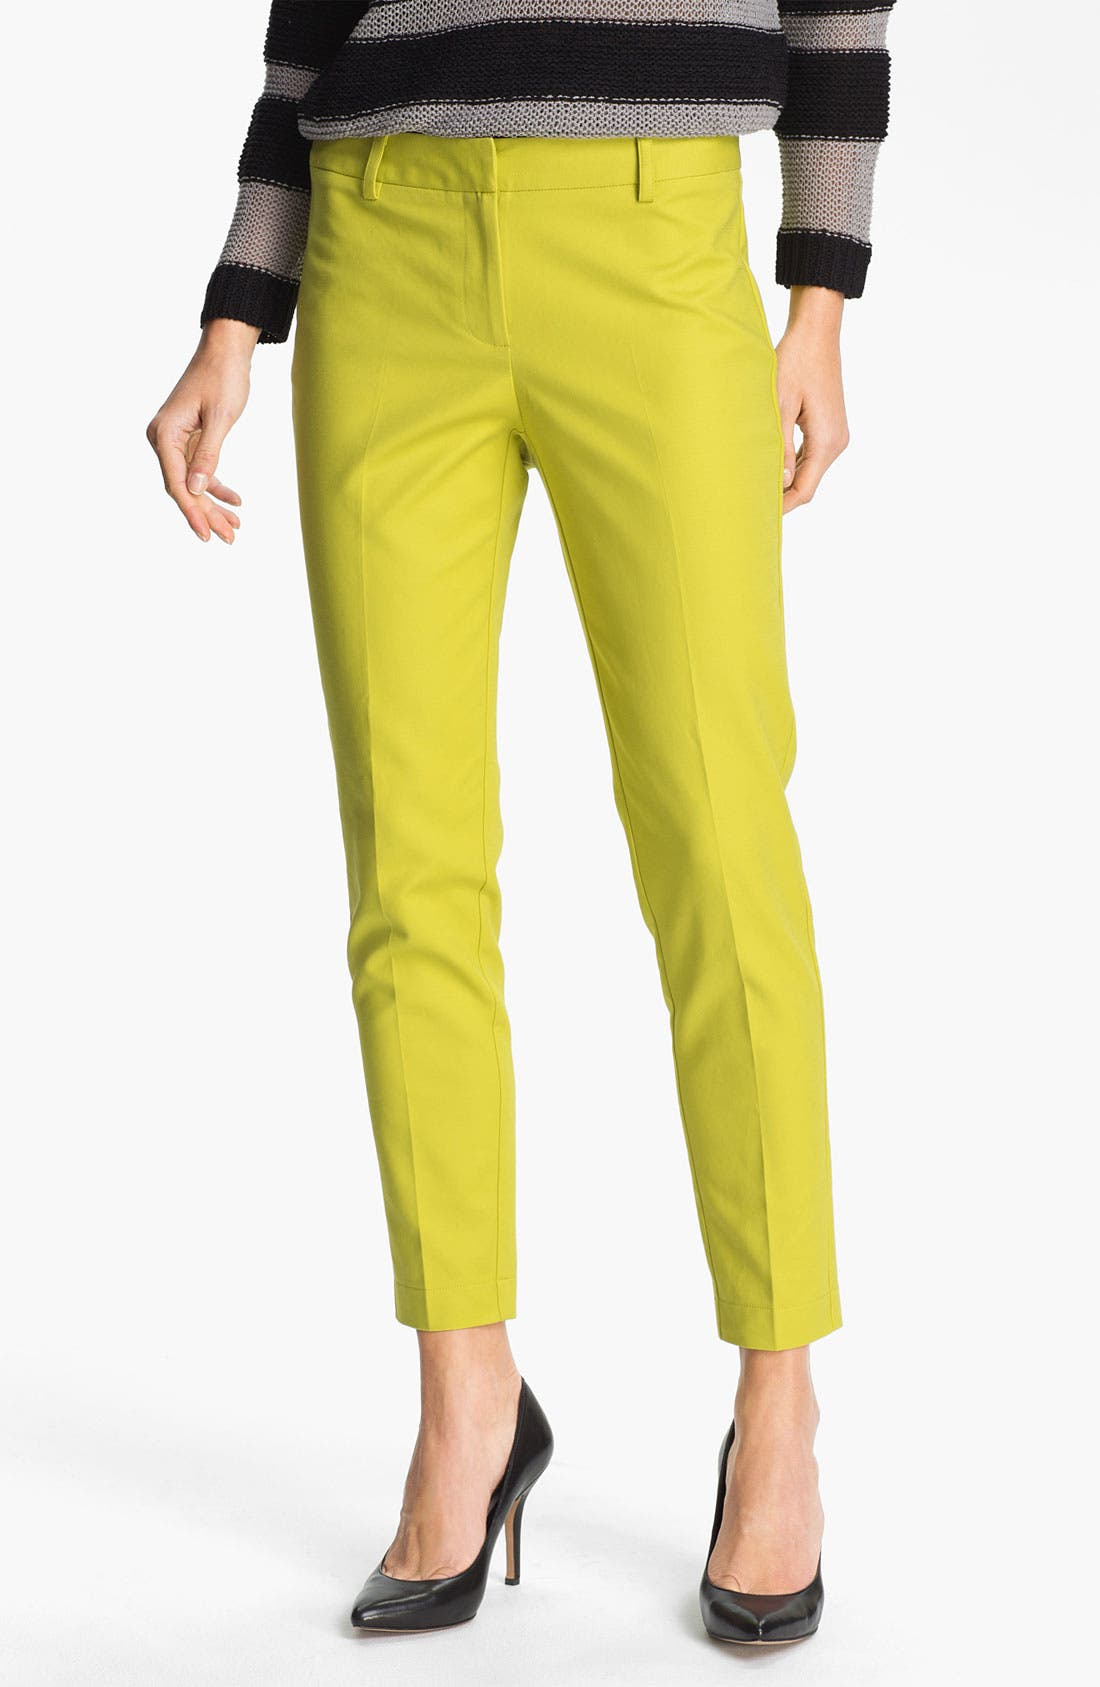 Alternate Image 1 Selected - Kenneth Cole New York 'Becky' Skinny Ankle Pants